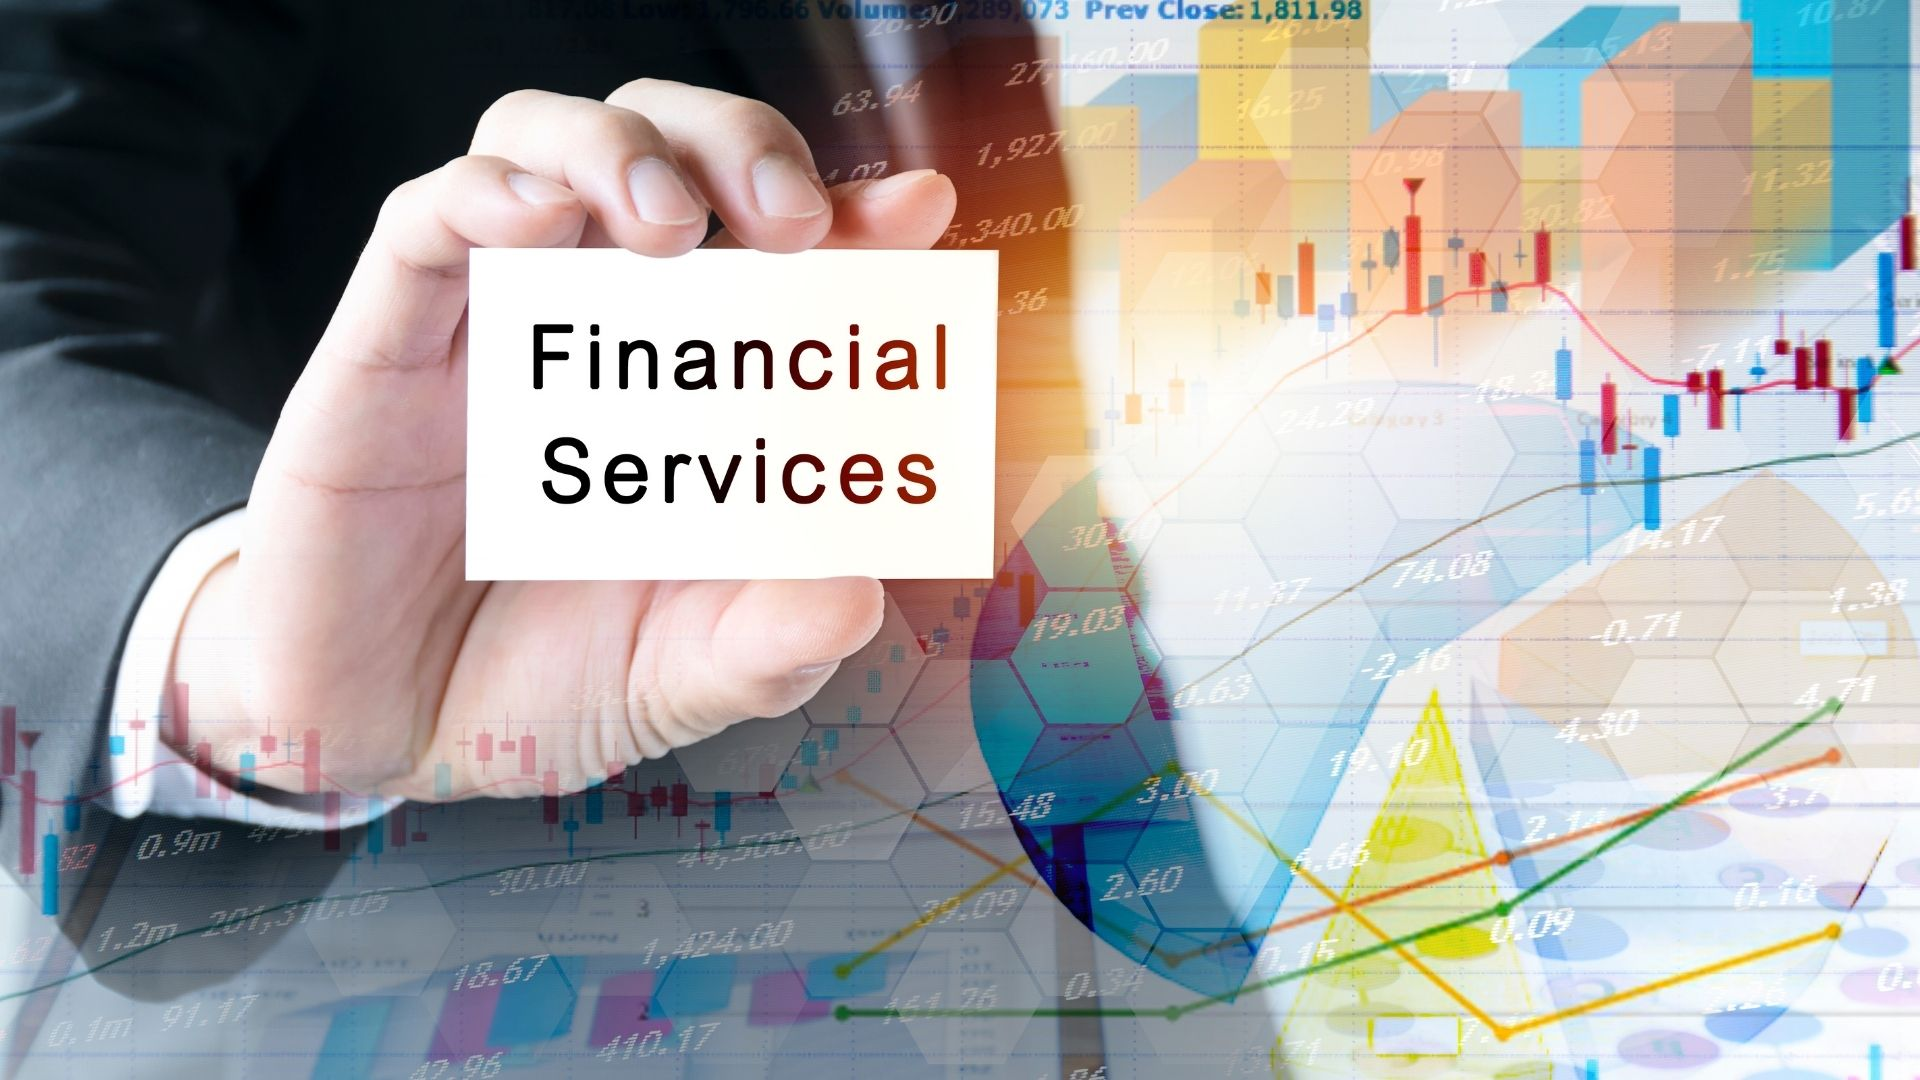 How the financial services industry can solve the issue of vulnerable code 41